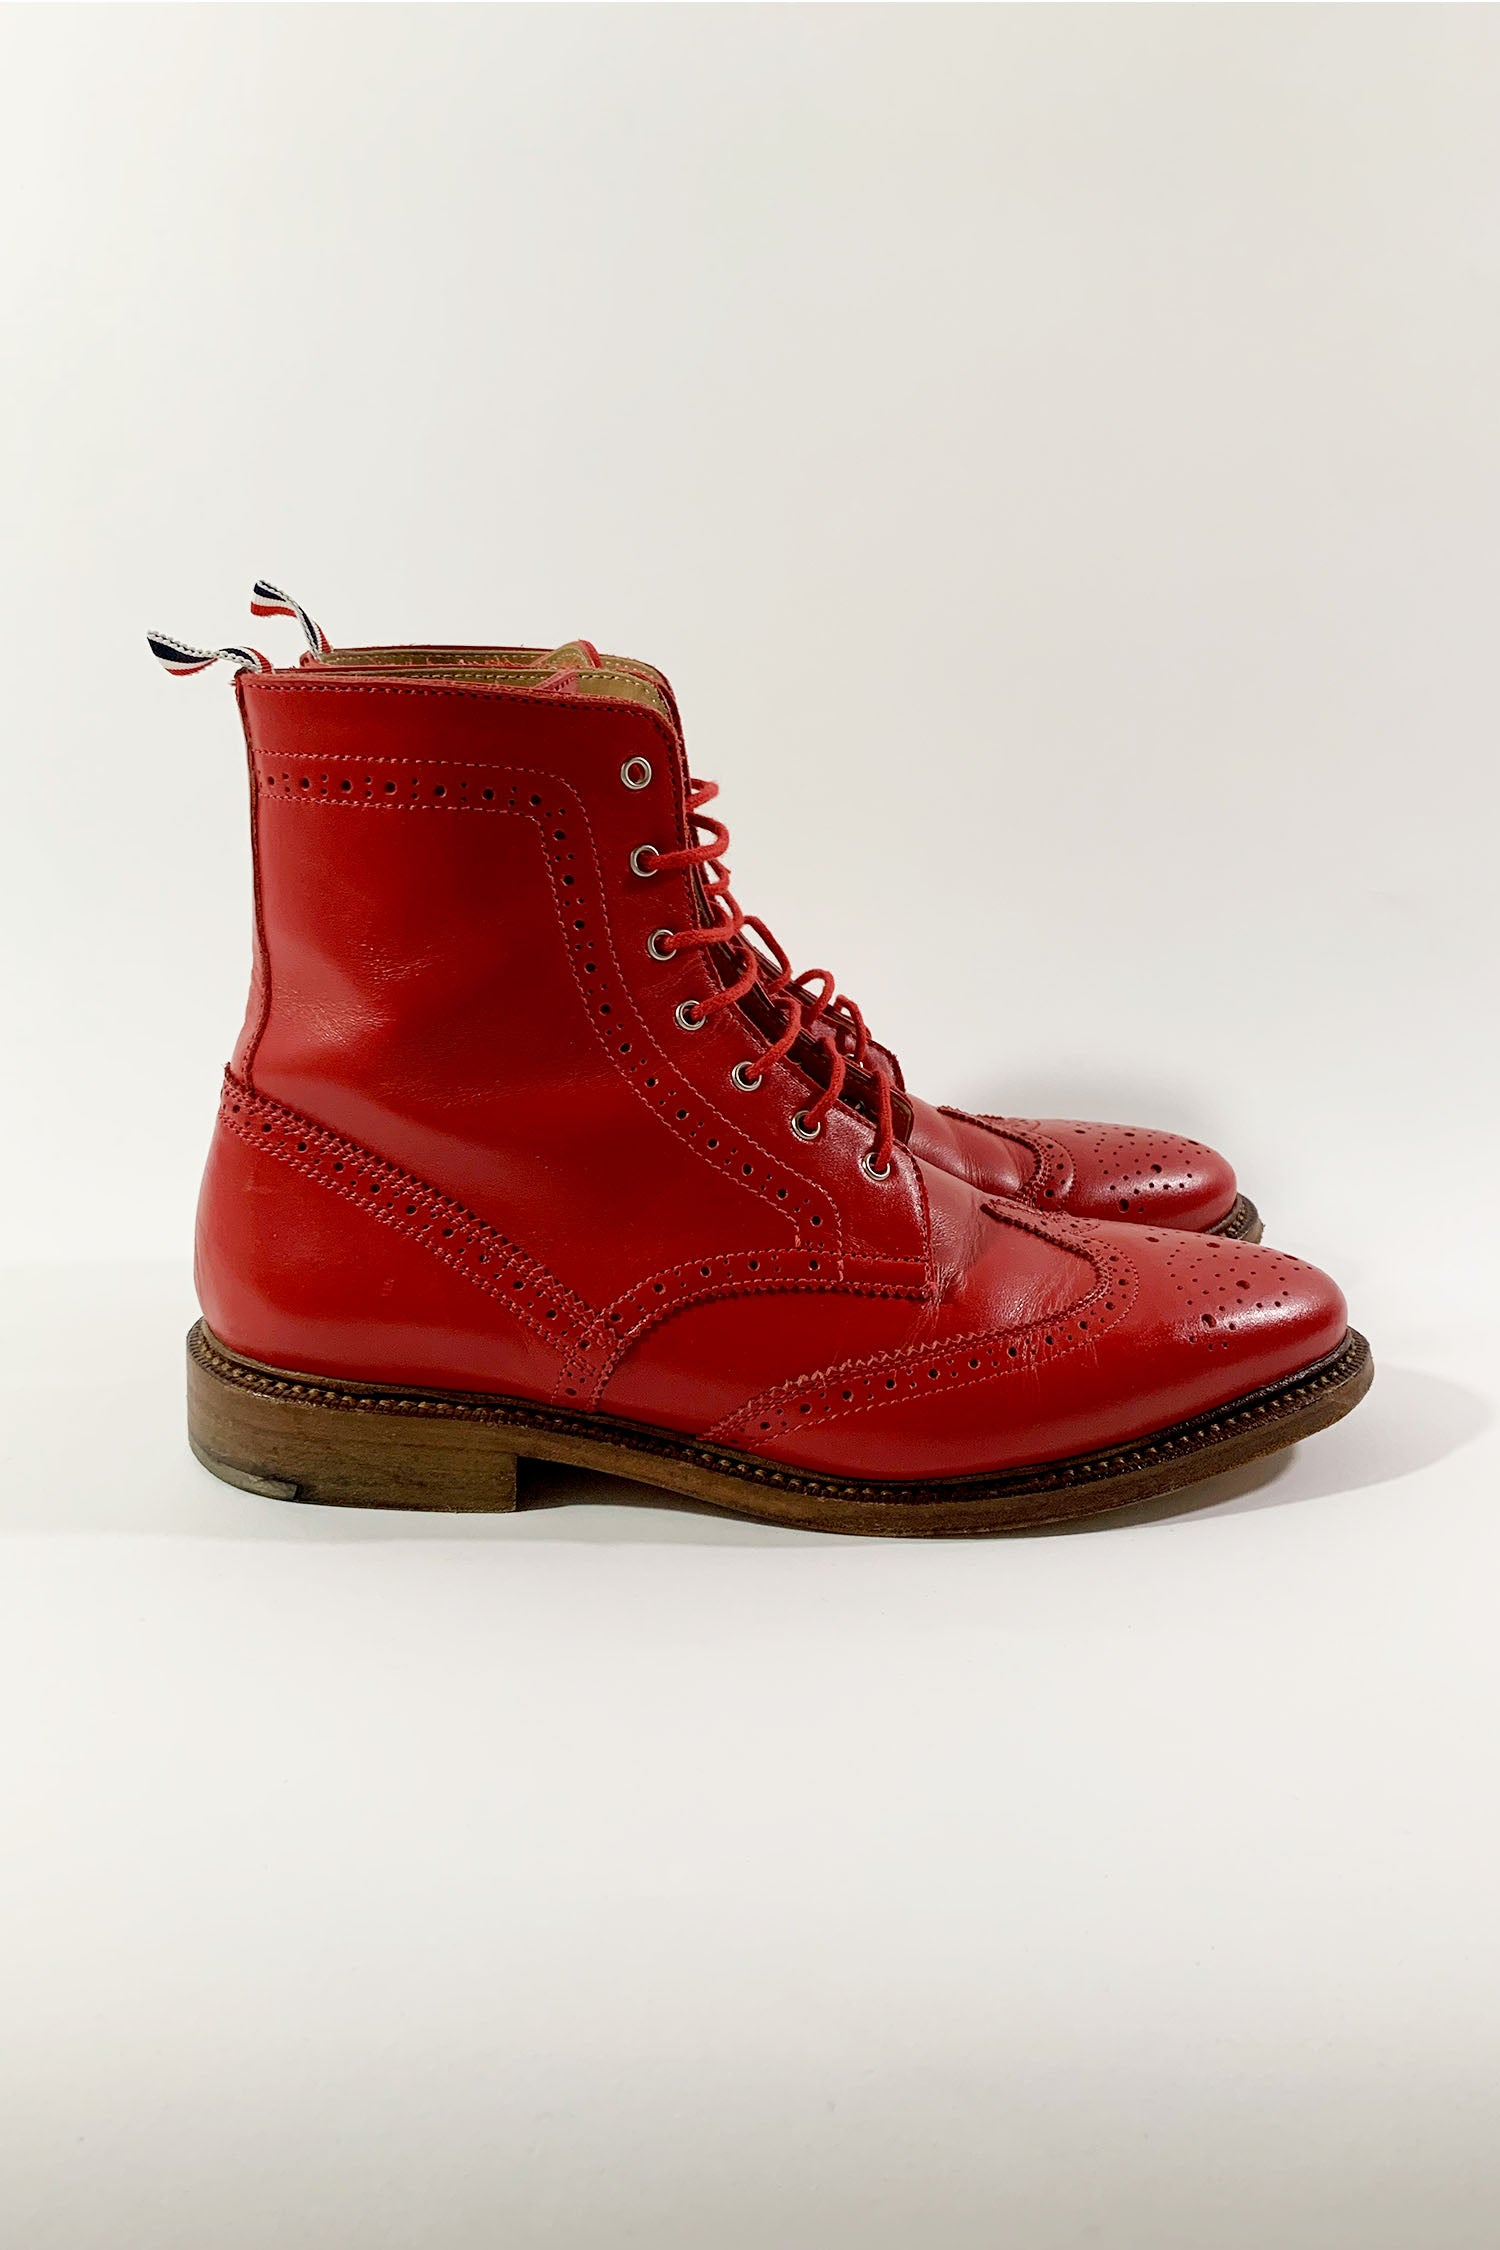 Thom Browne Red Wingtip Leather Boots sz 40